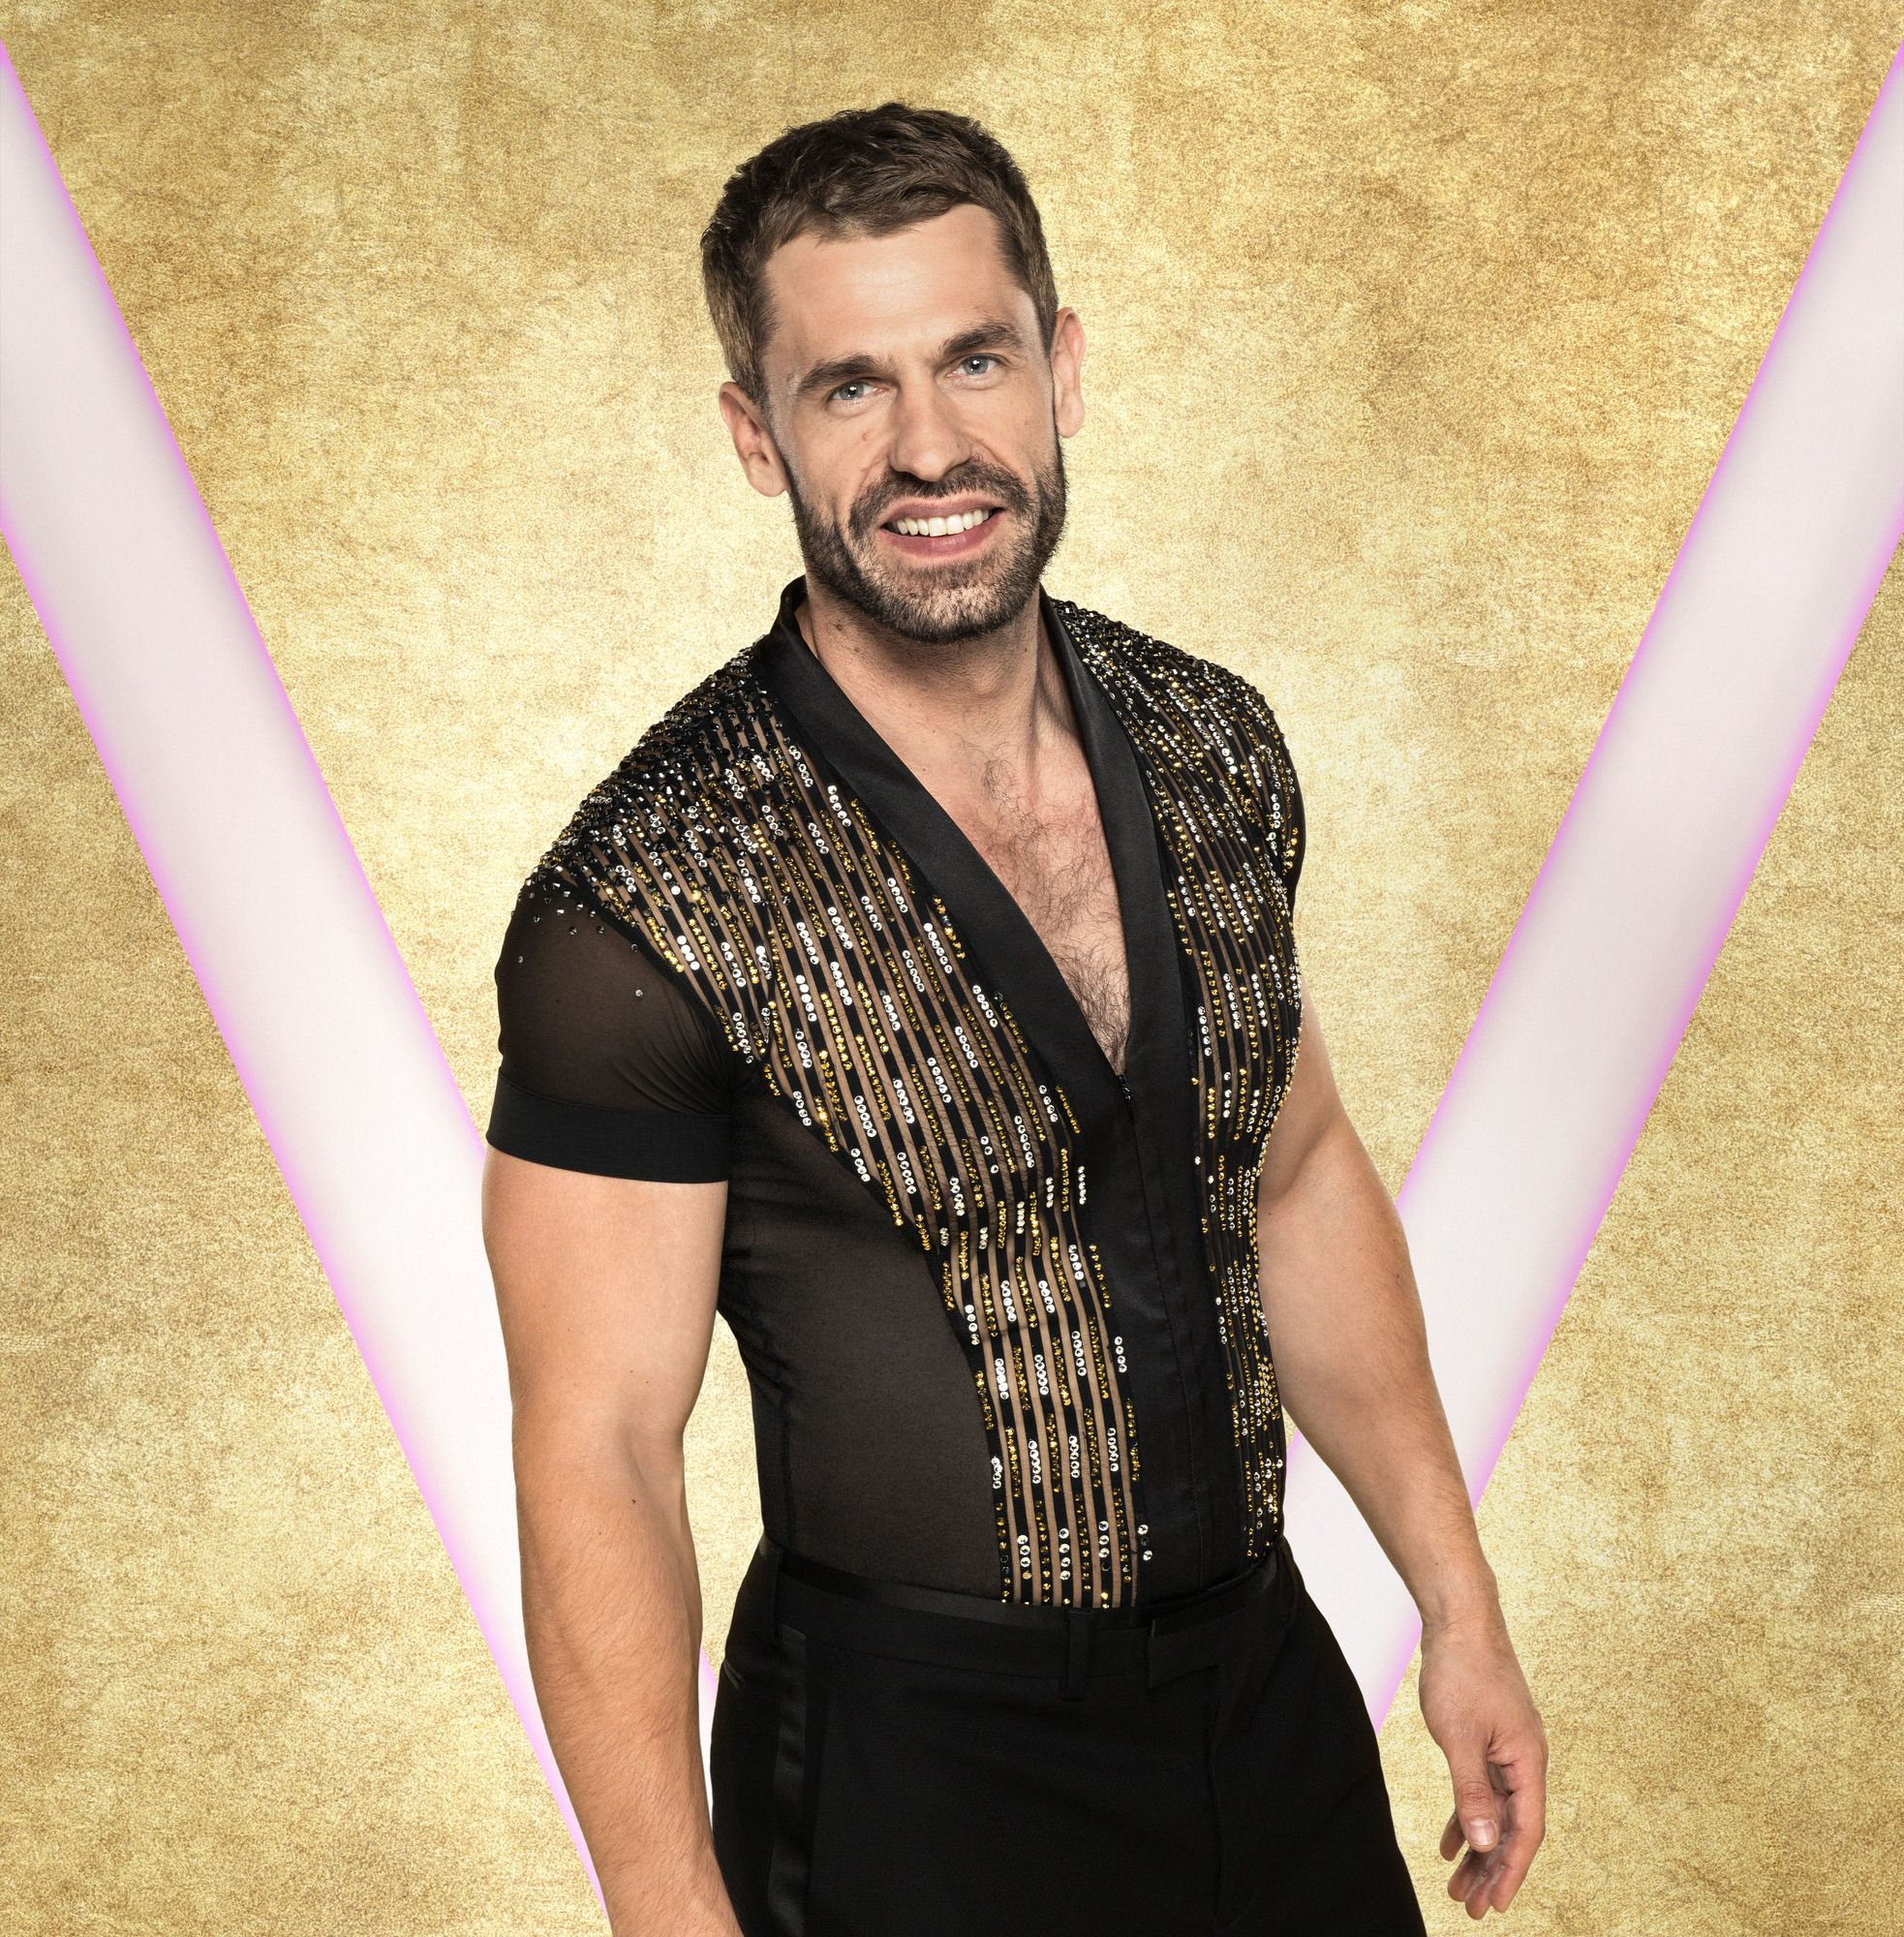 This is the job Emmerdale's Kelvin Fletcher dropped out of to do Strictly Come Dancing